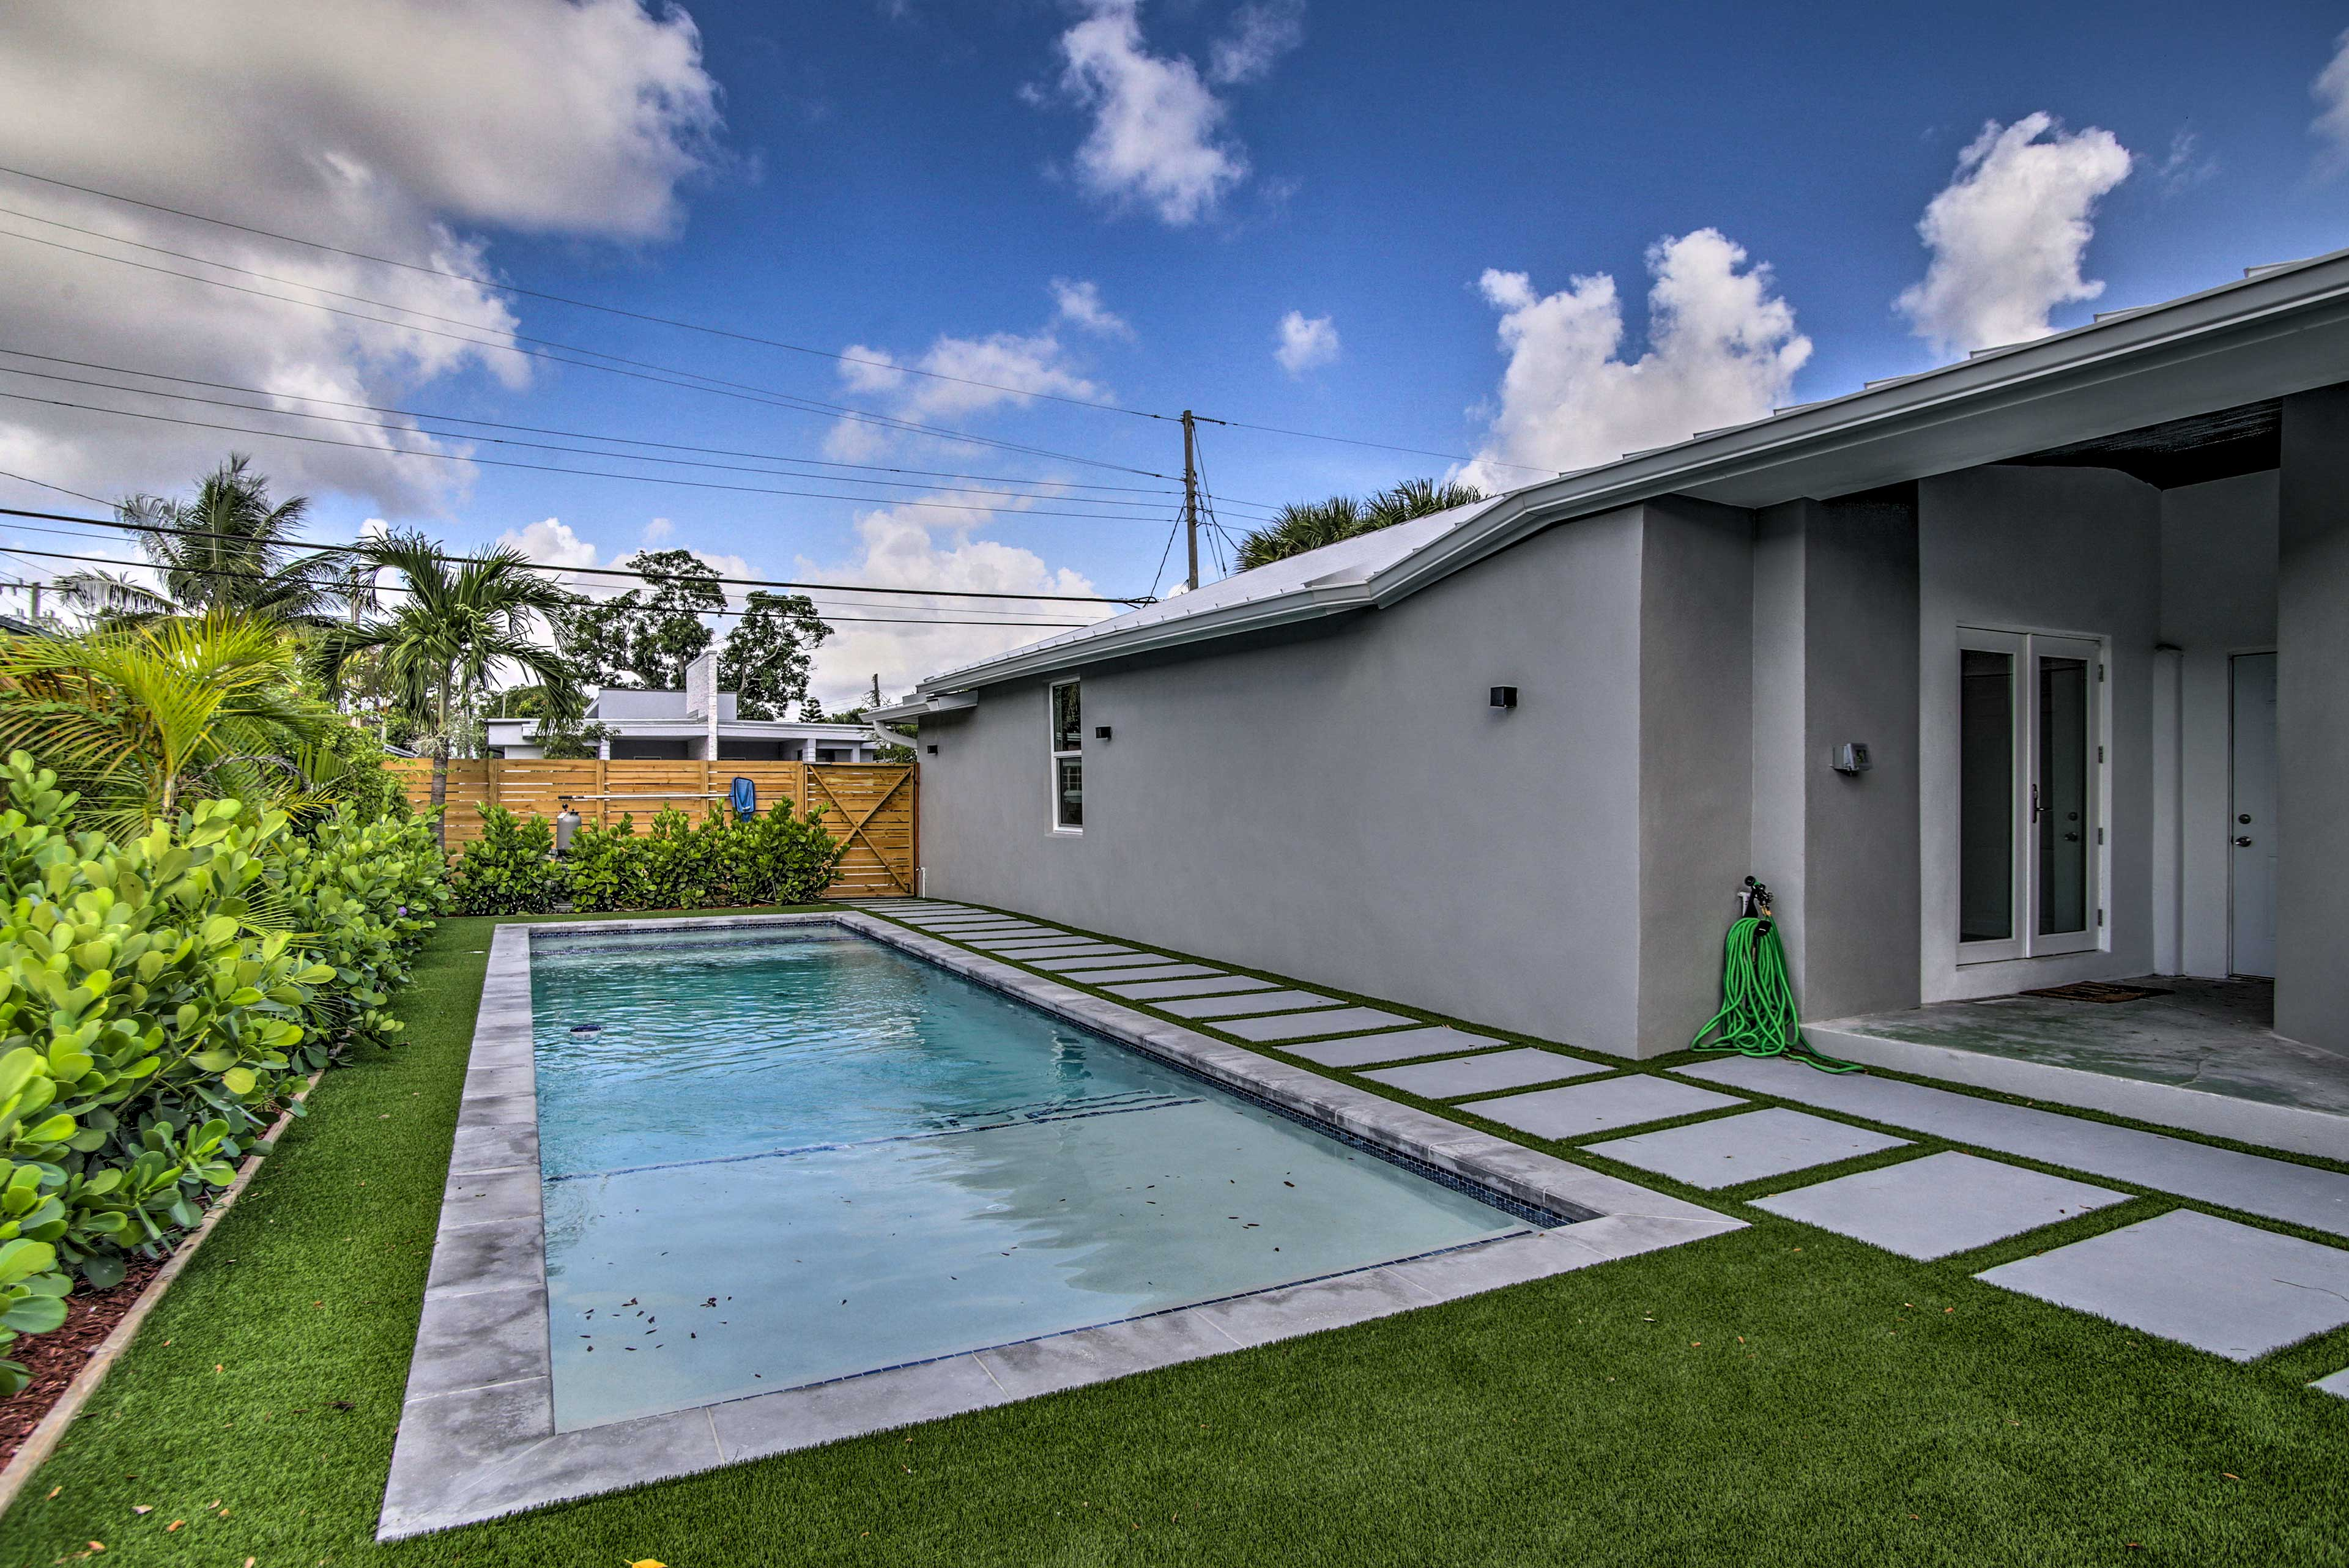 The home is located in a fully fenced duplex.